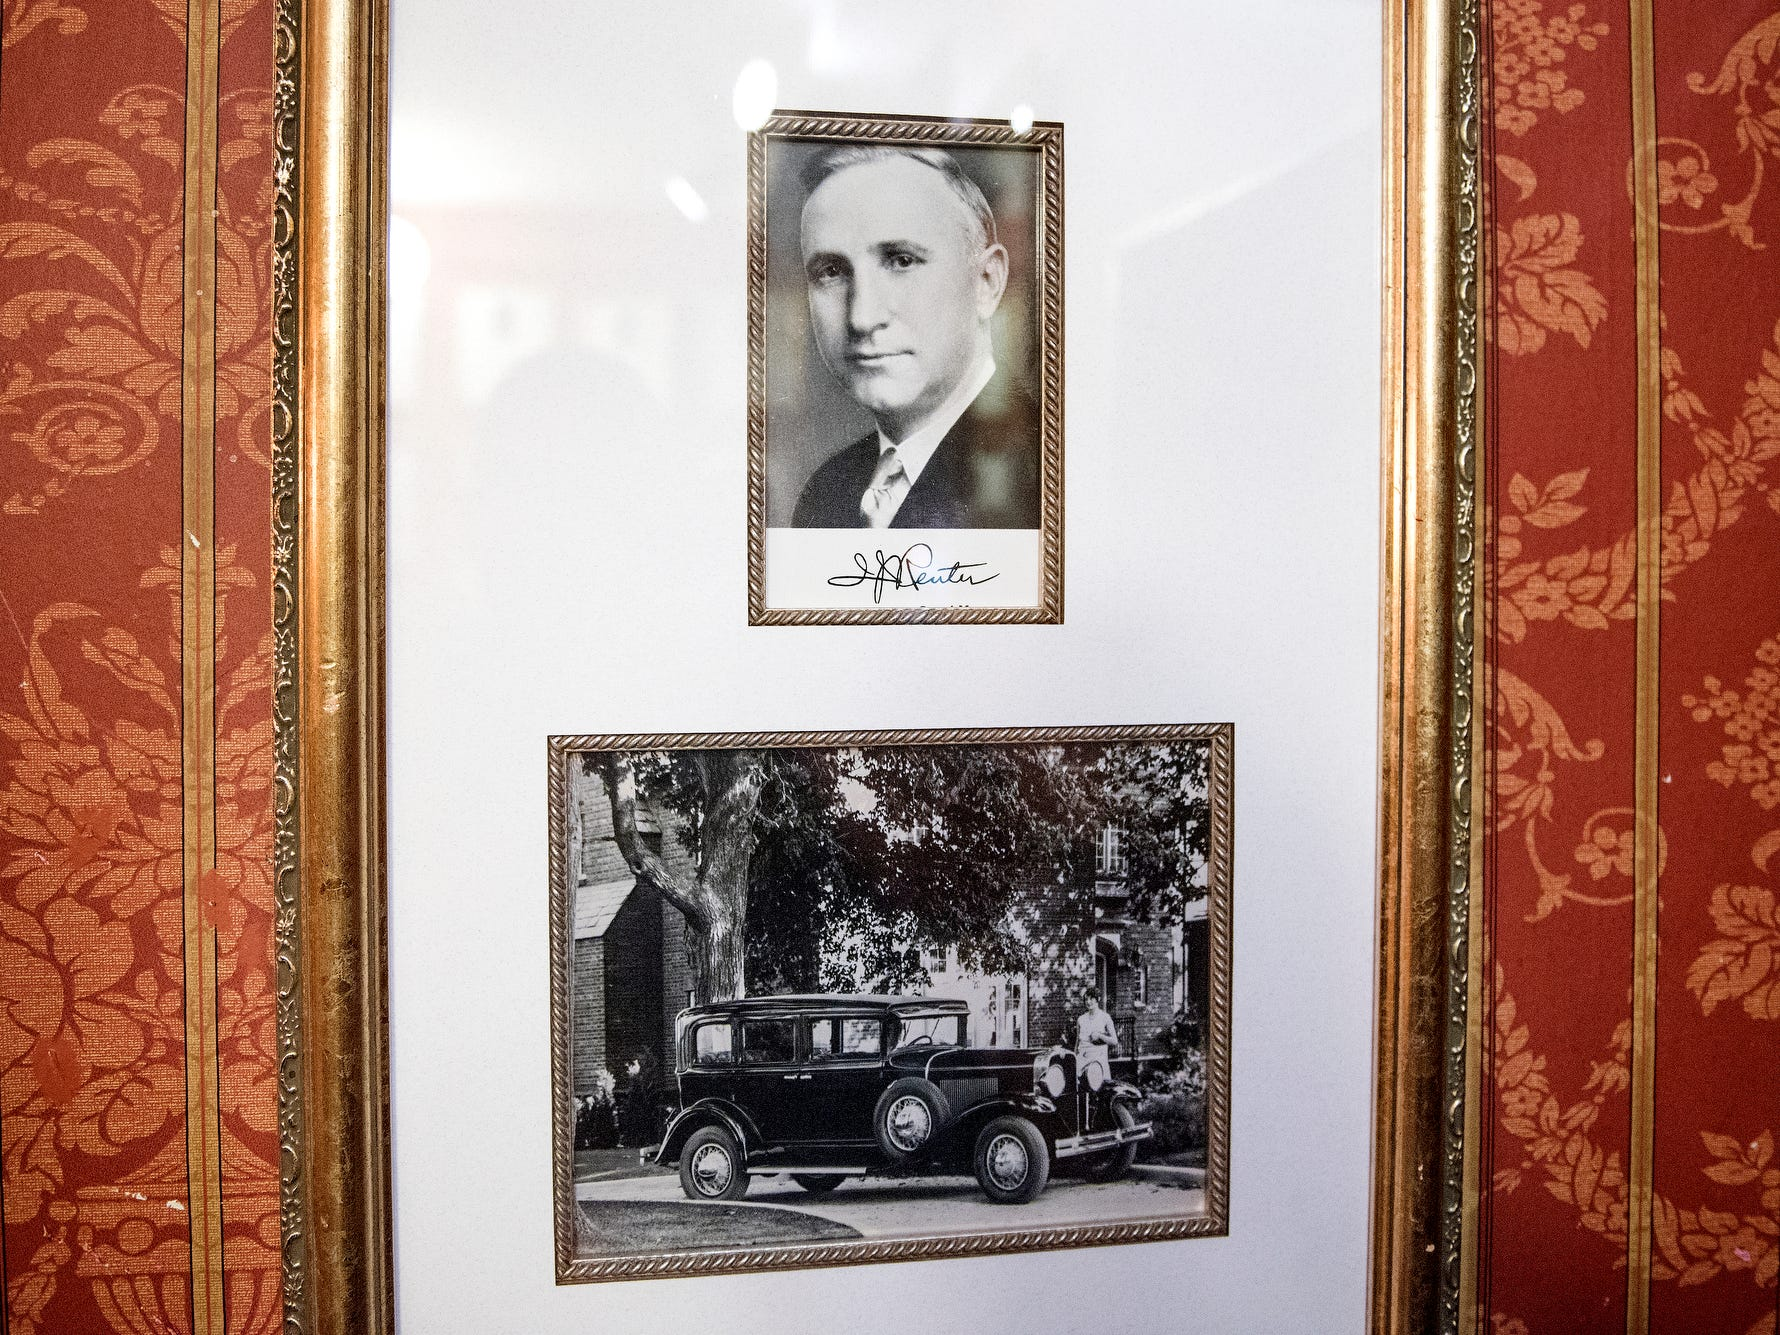 A portrait of original owner Irving Reuter and his wife Janet posed next to an Oldsmobile hangs in the garden level inside the English Inn on Tuesday, Aug. 28, 2018, in Eaton Rapids.